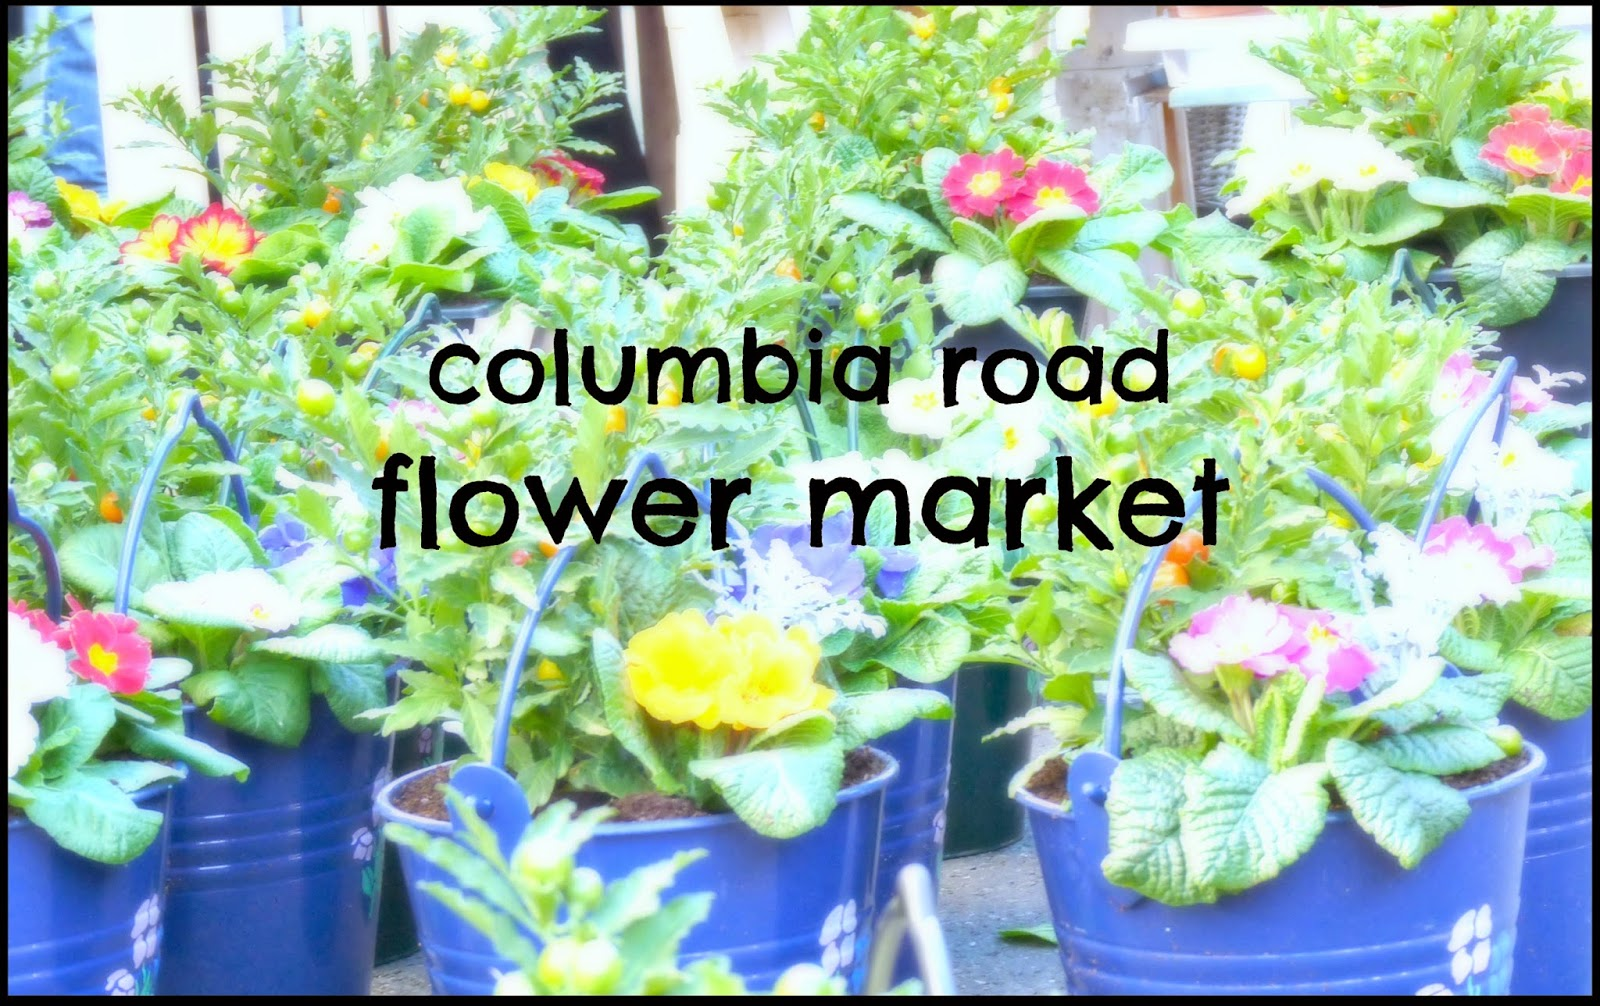 columbia road flower market Londres